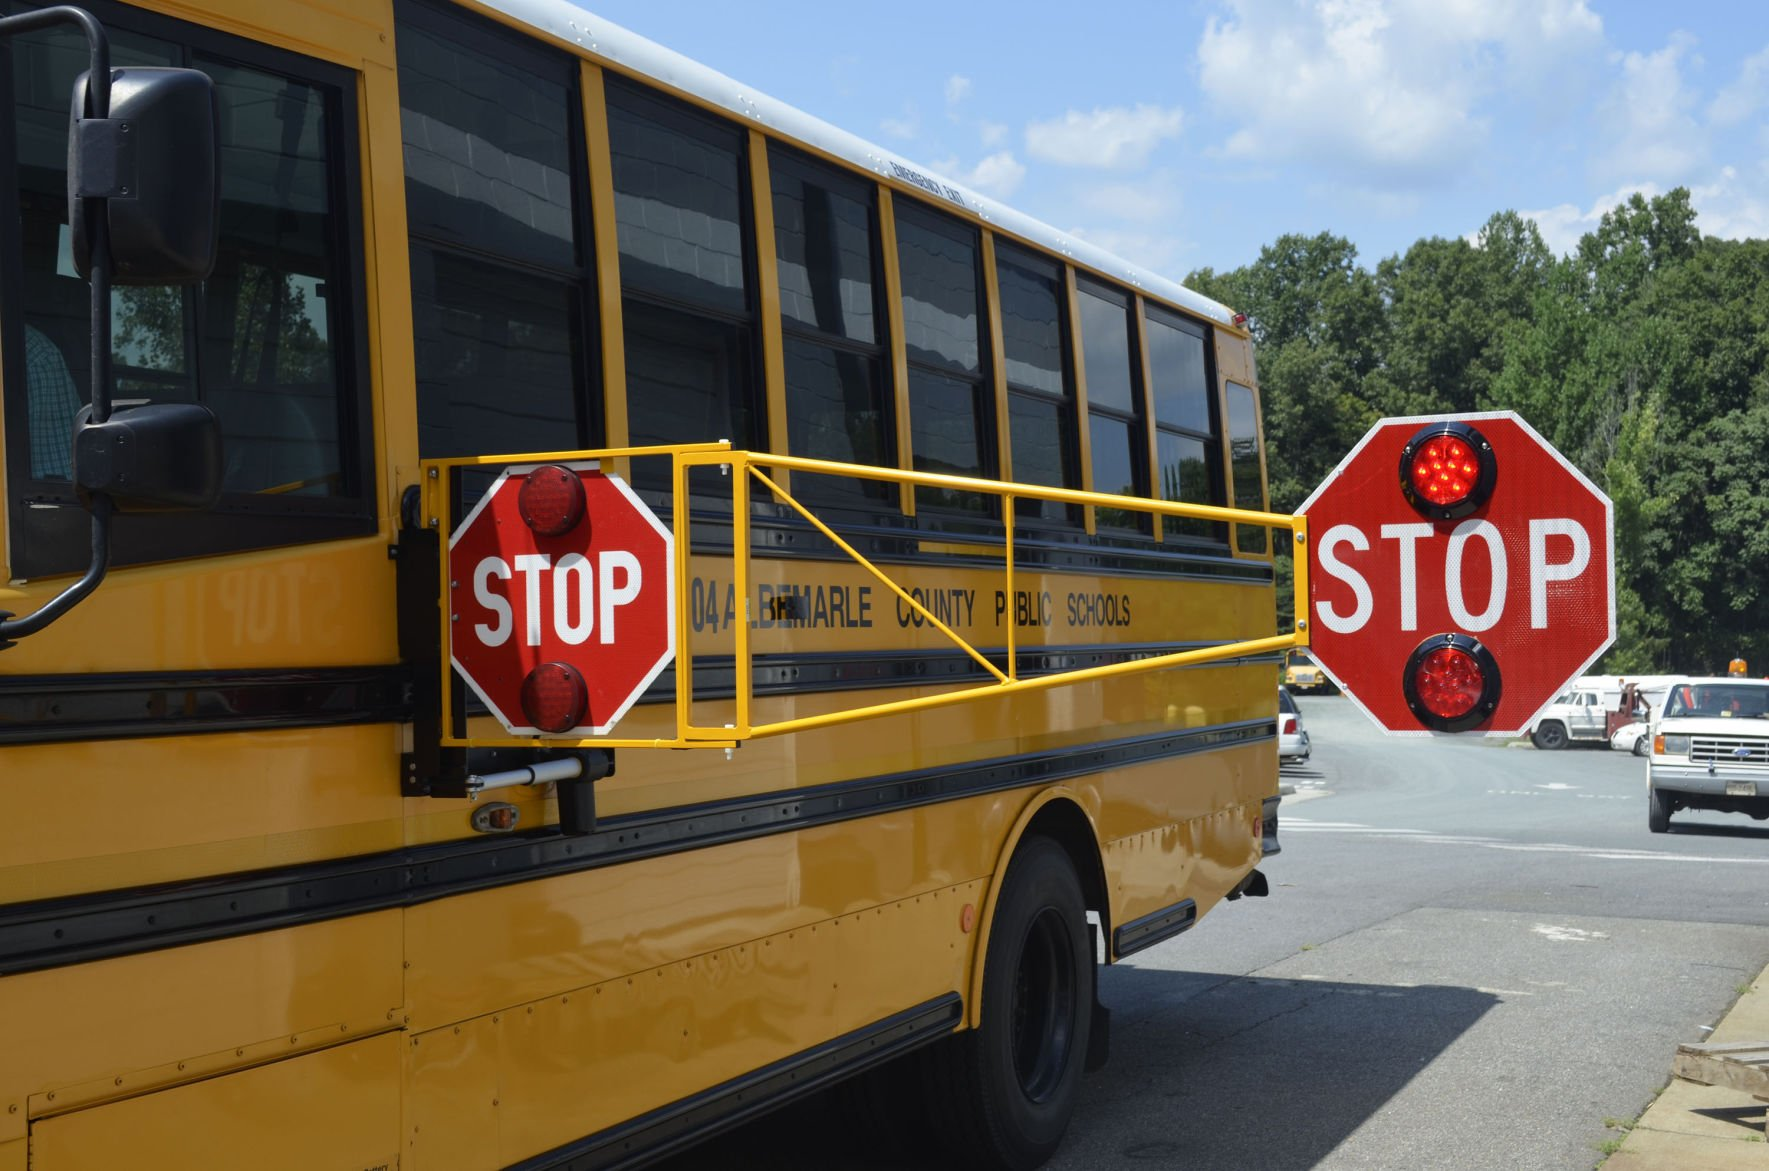 Drivers reminded that school buses will be on the road soon